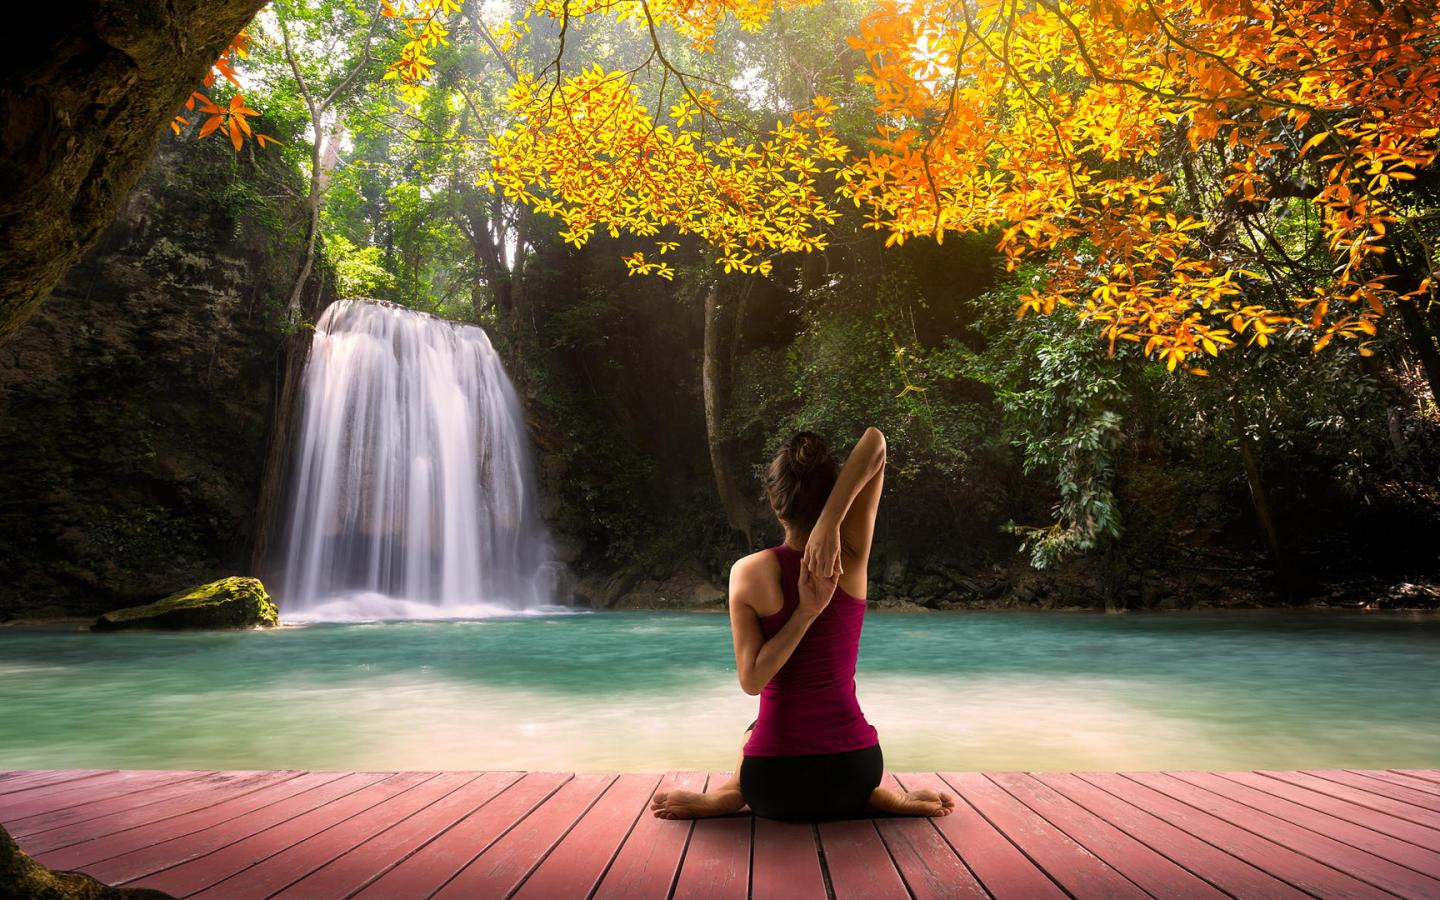 Grayscale Girl Wallpaper Yoga Girl Picture With Autumn Waterfall Background Hd